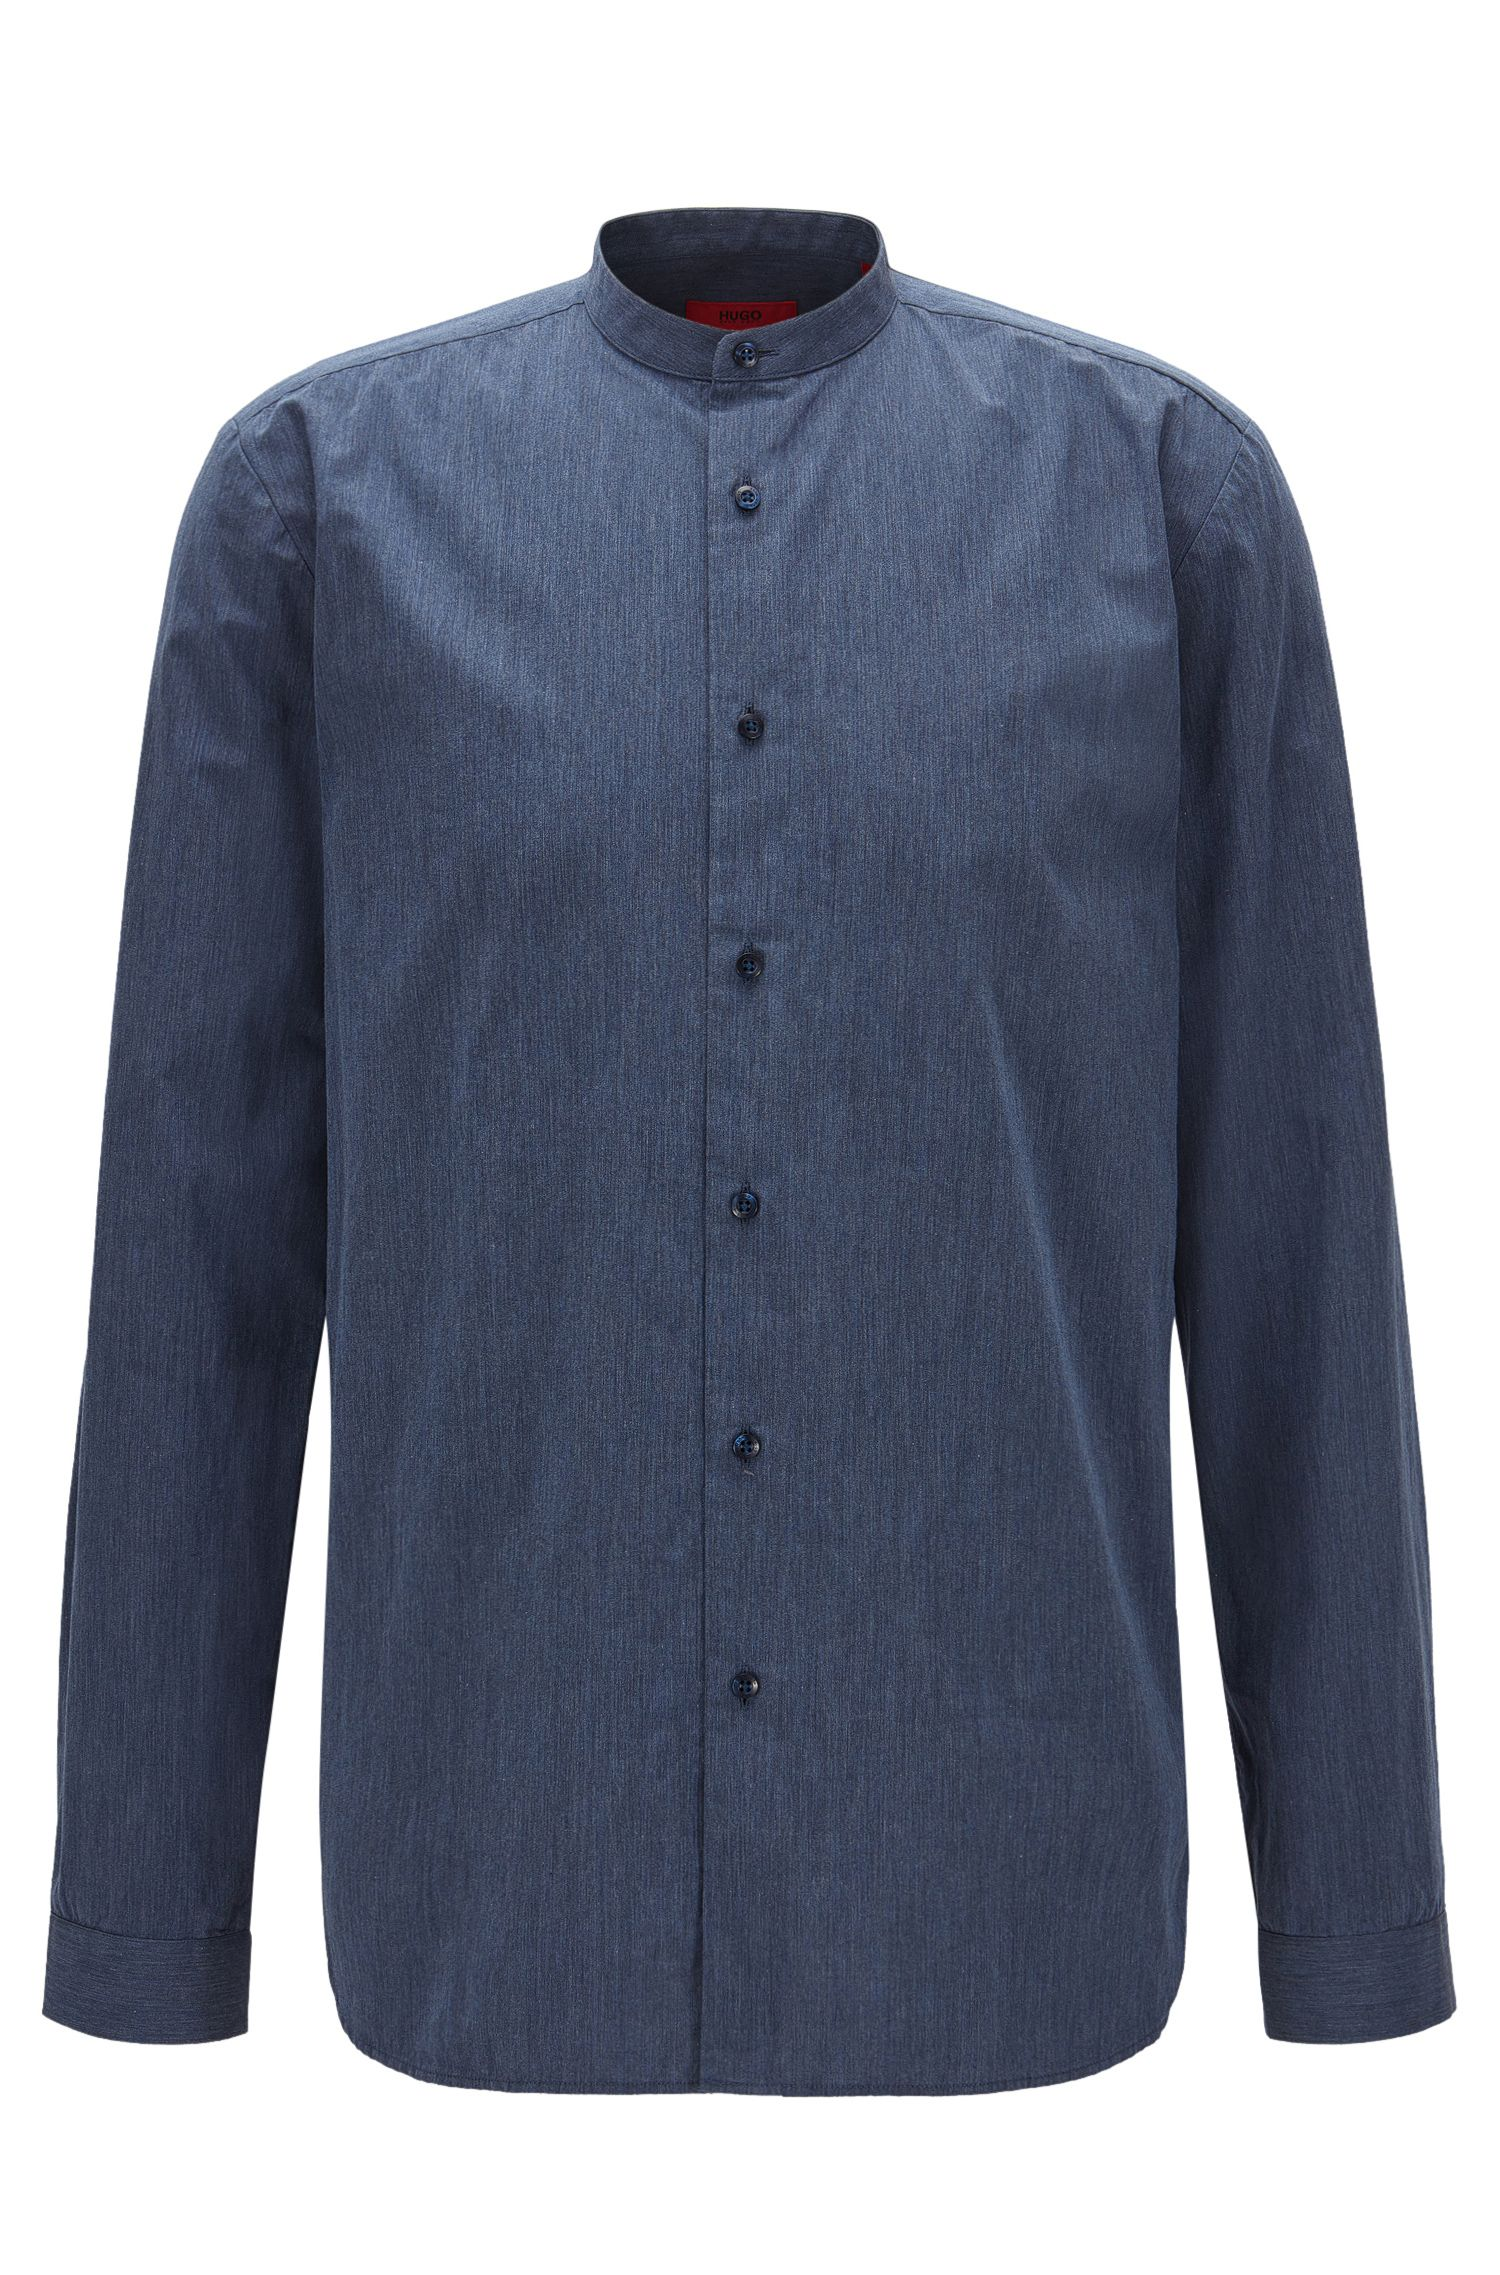 'Eddison' | Relaxed Fit, Cotton Button Down Shirt